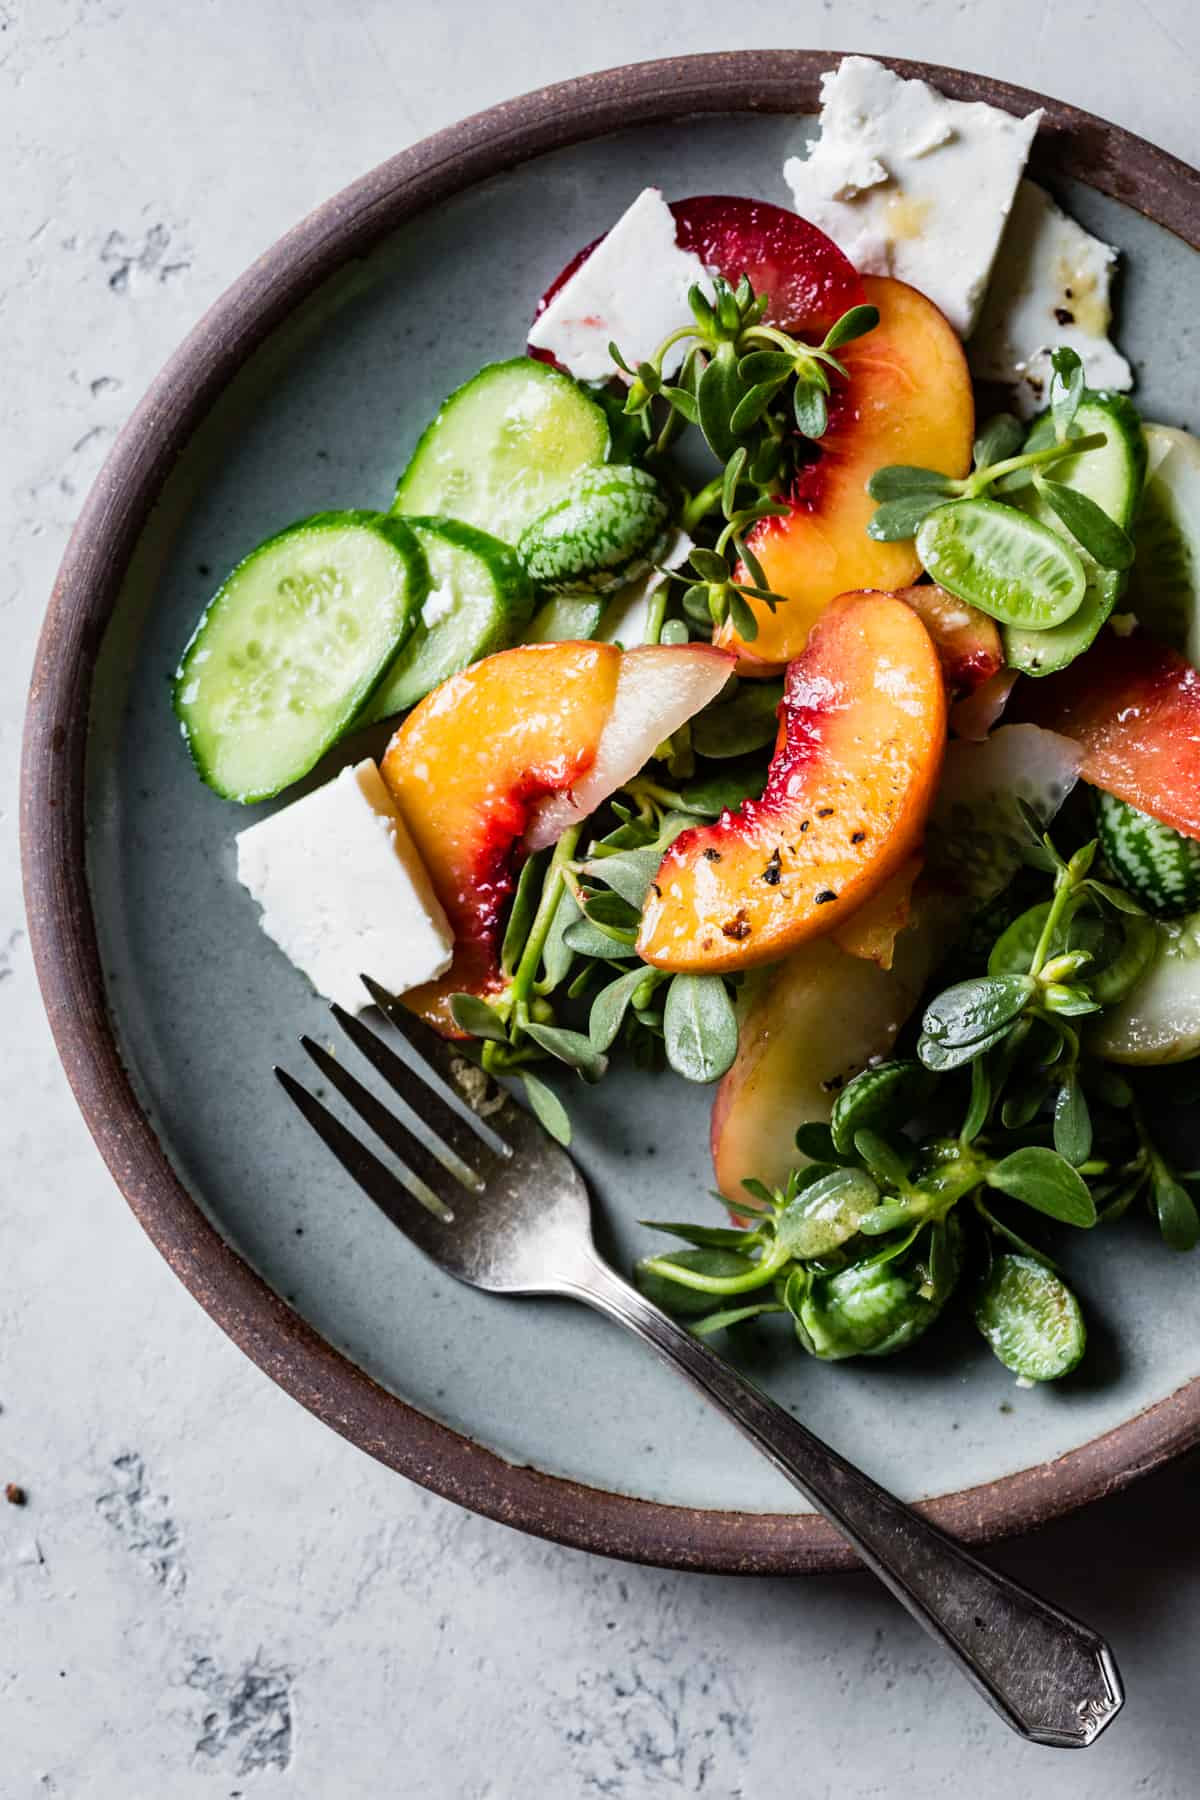 Stone Fruit Cucumber Salad with Ricotta Salata, Purslane, and Golden Balsamic Miso Vinaigrette on plate